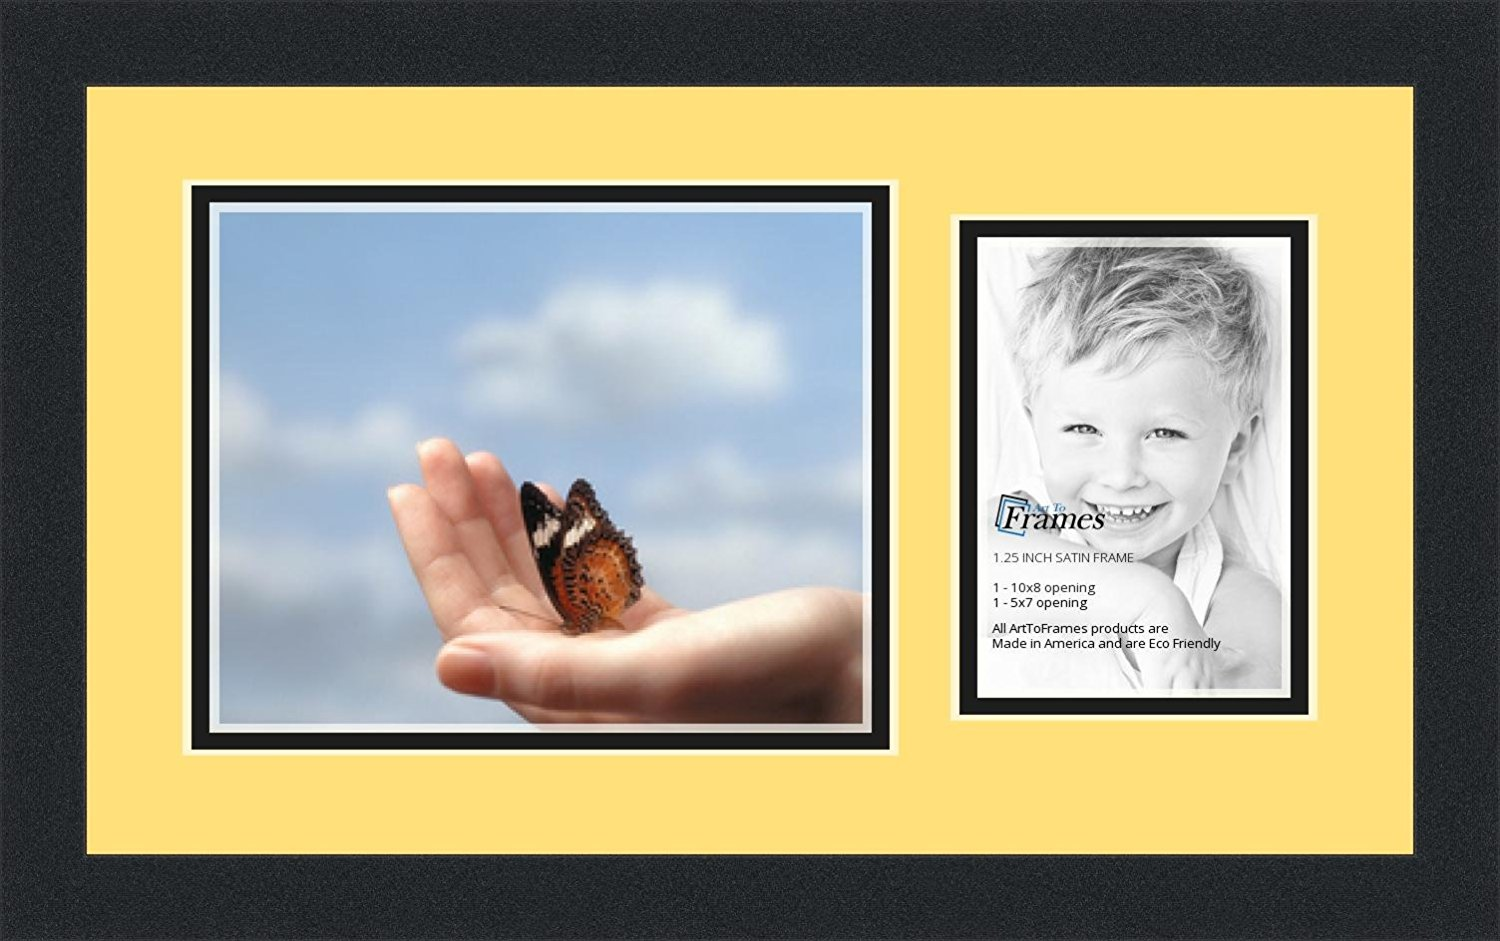 Cheap double frame 8x10 find double frame 8x10 deals on line at art to frames double multimat 190 47r89 frbw26079 collage photo jeuxipadfo Gallery